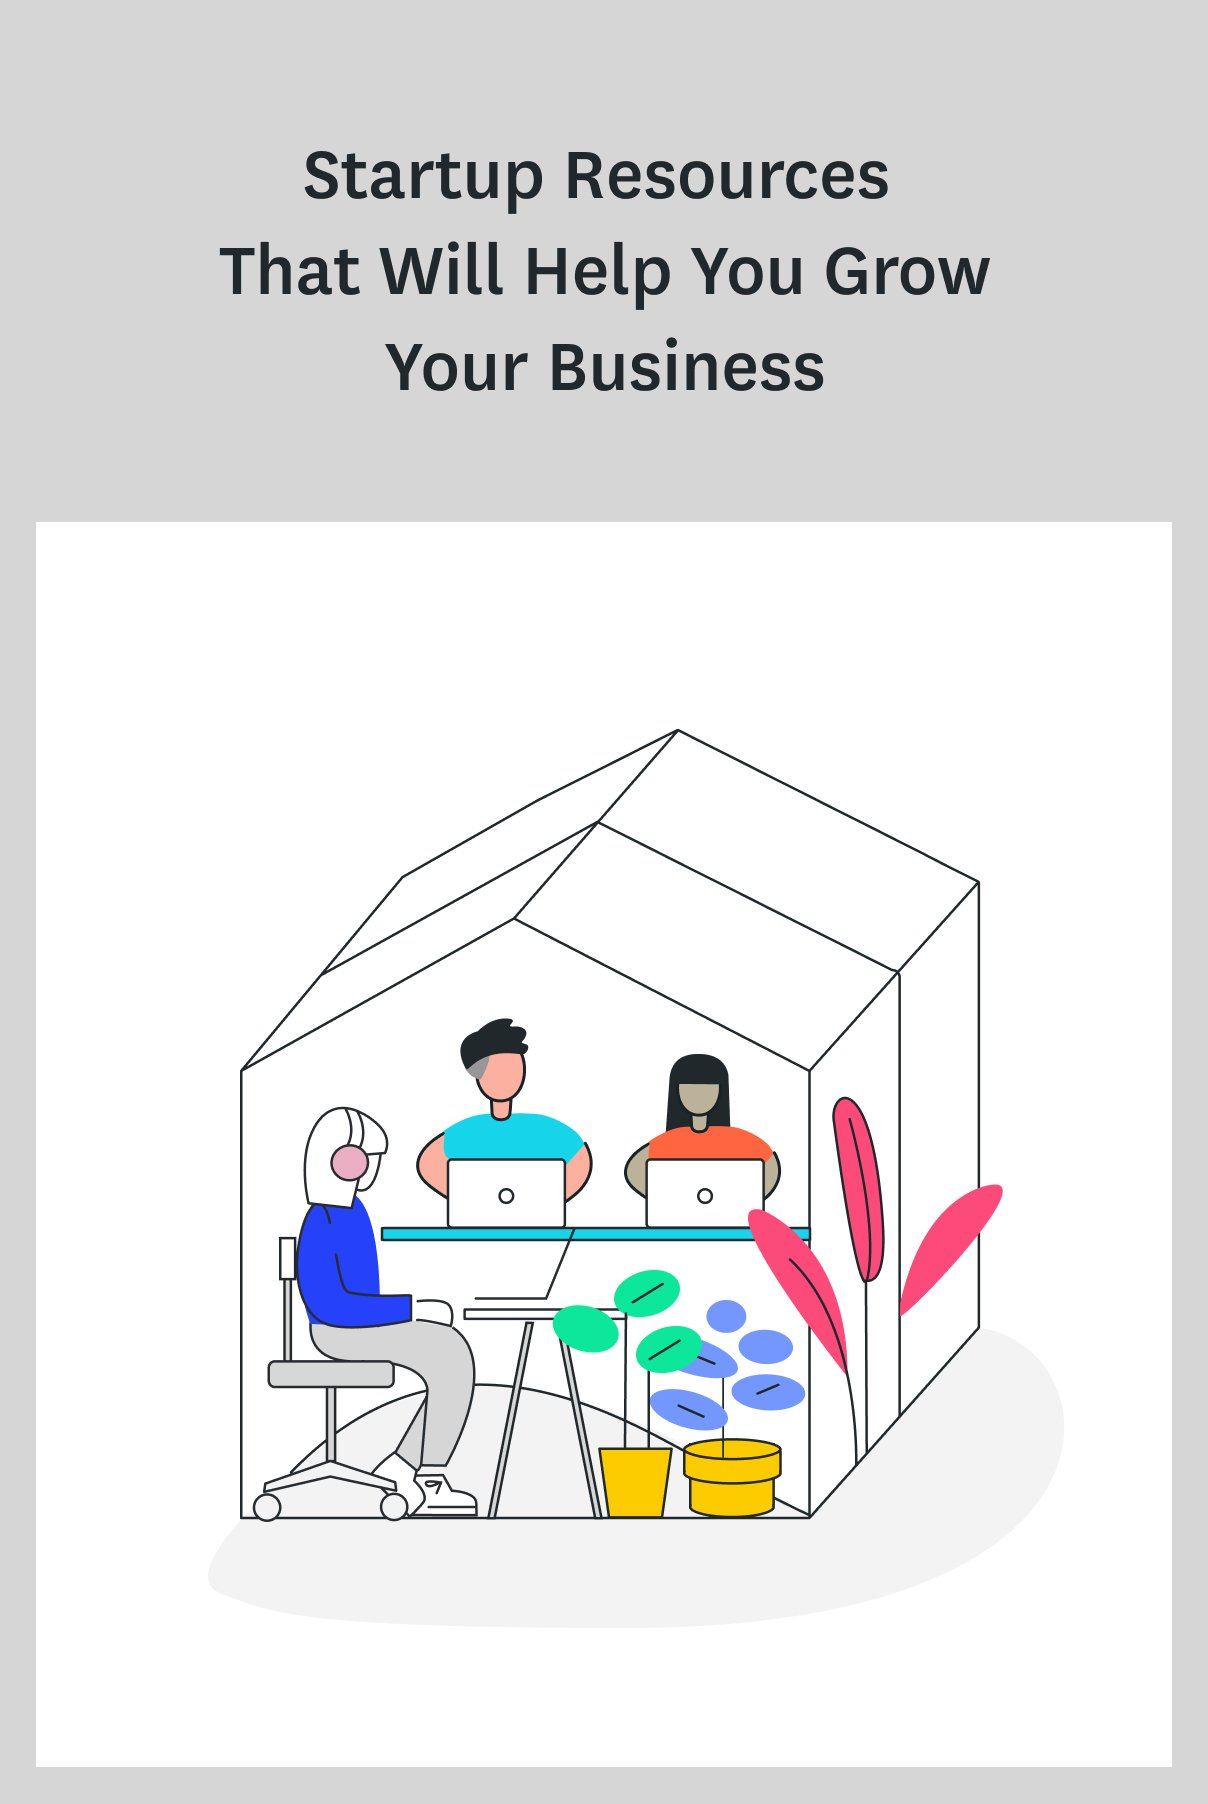 Starting a business is tough. With the right startup resources by your side, you'll be able to work faster and earn sooner. Click through and read now so you don't end up like the 90% of startups that fail to thrive. #startup #entrepreneur